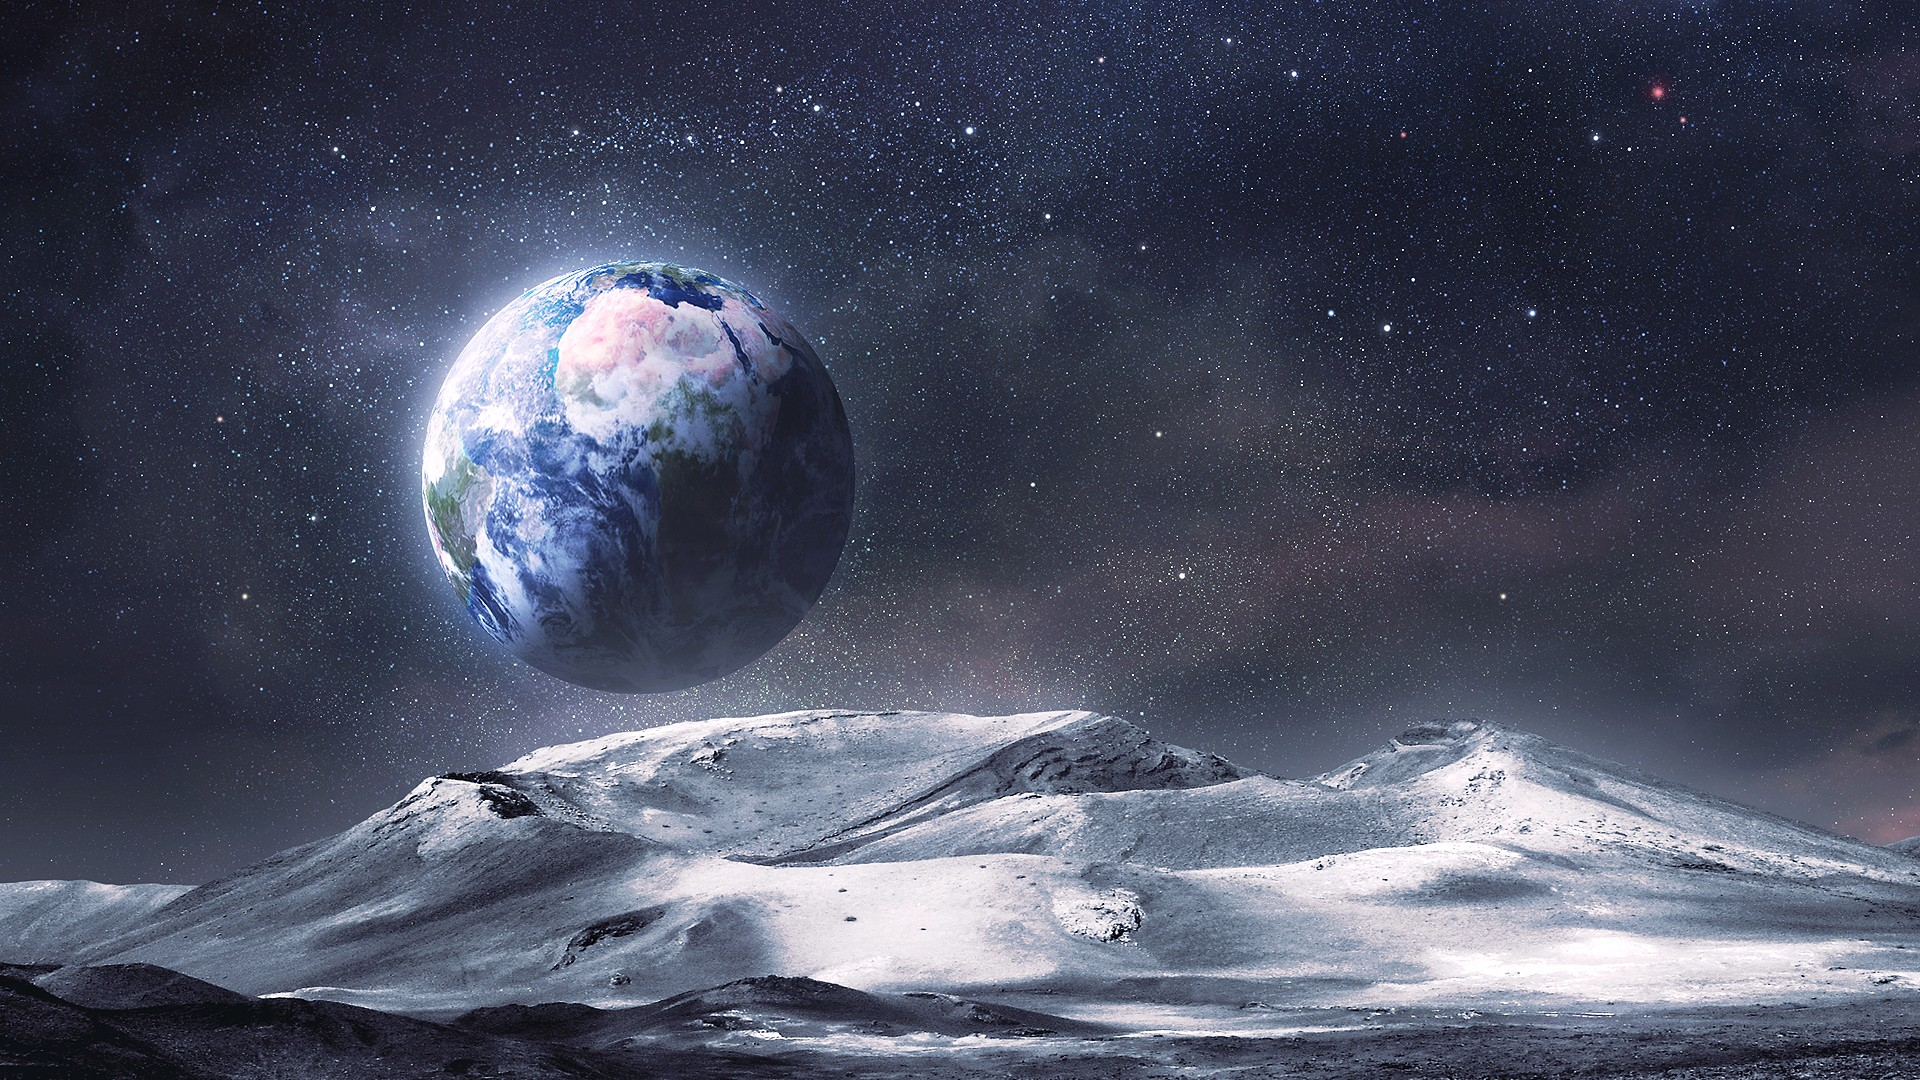 landscapes of planets like earth - photo #22